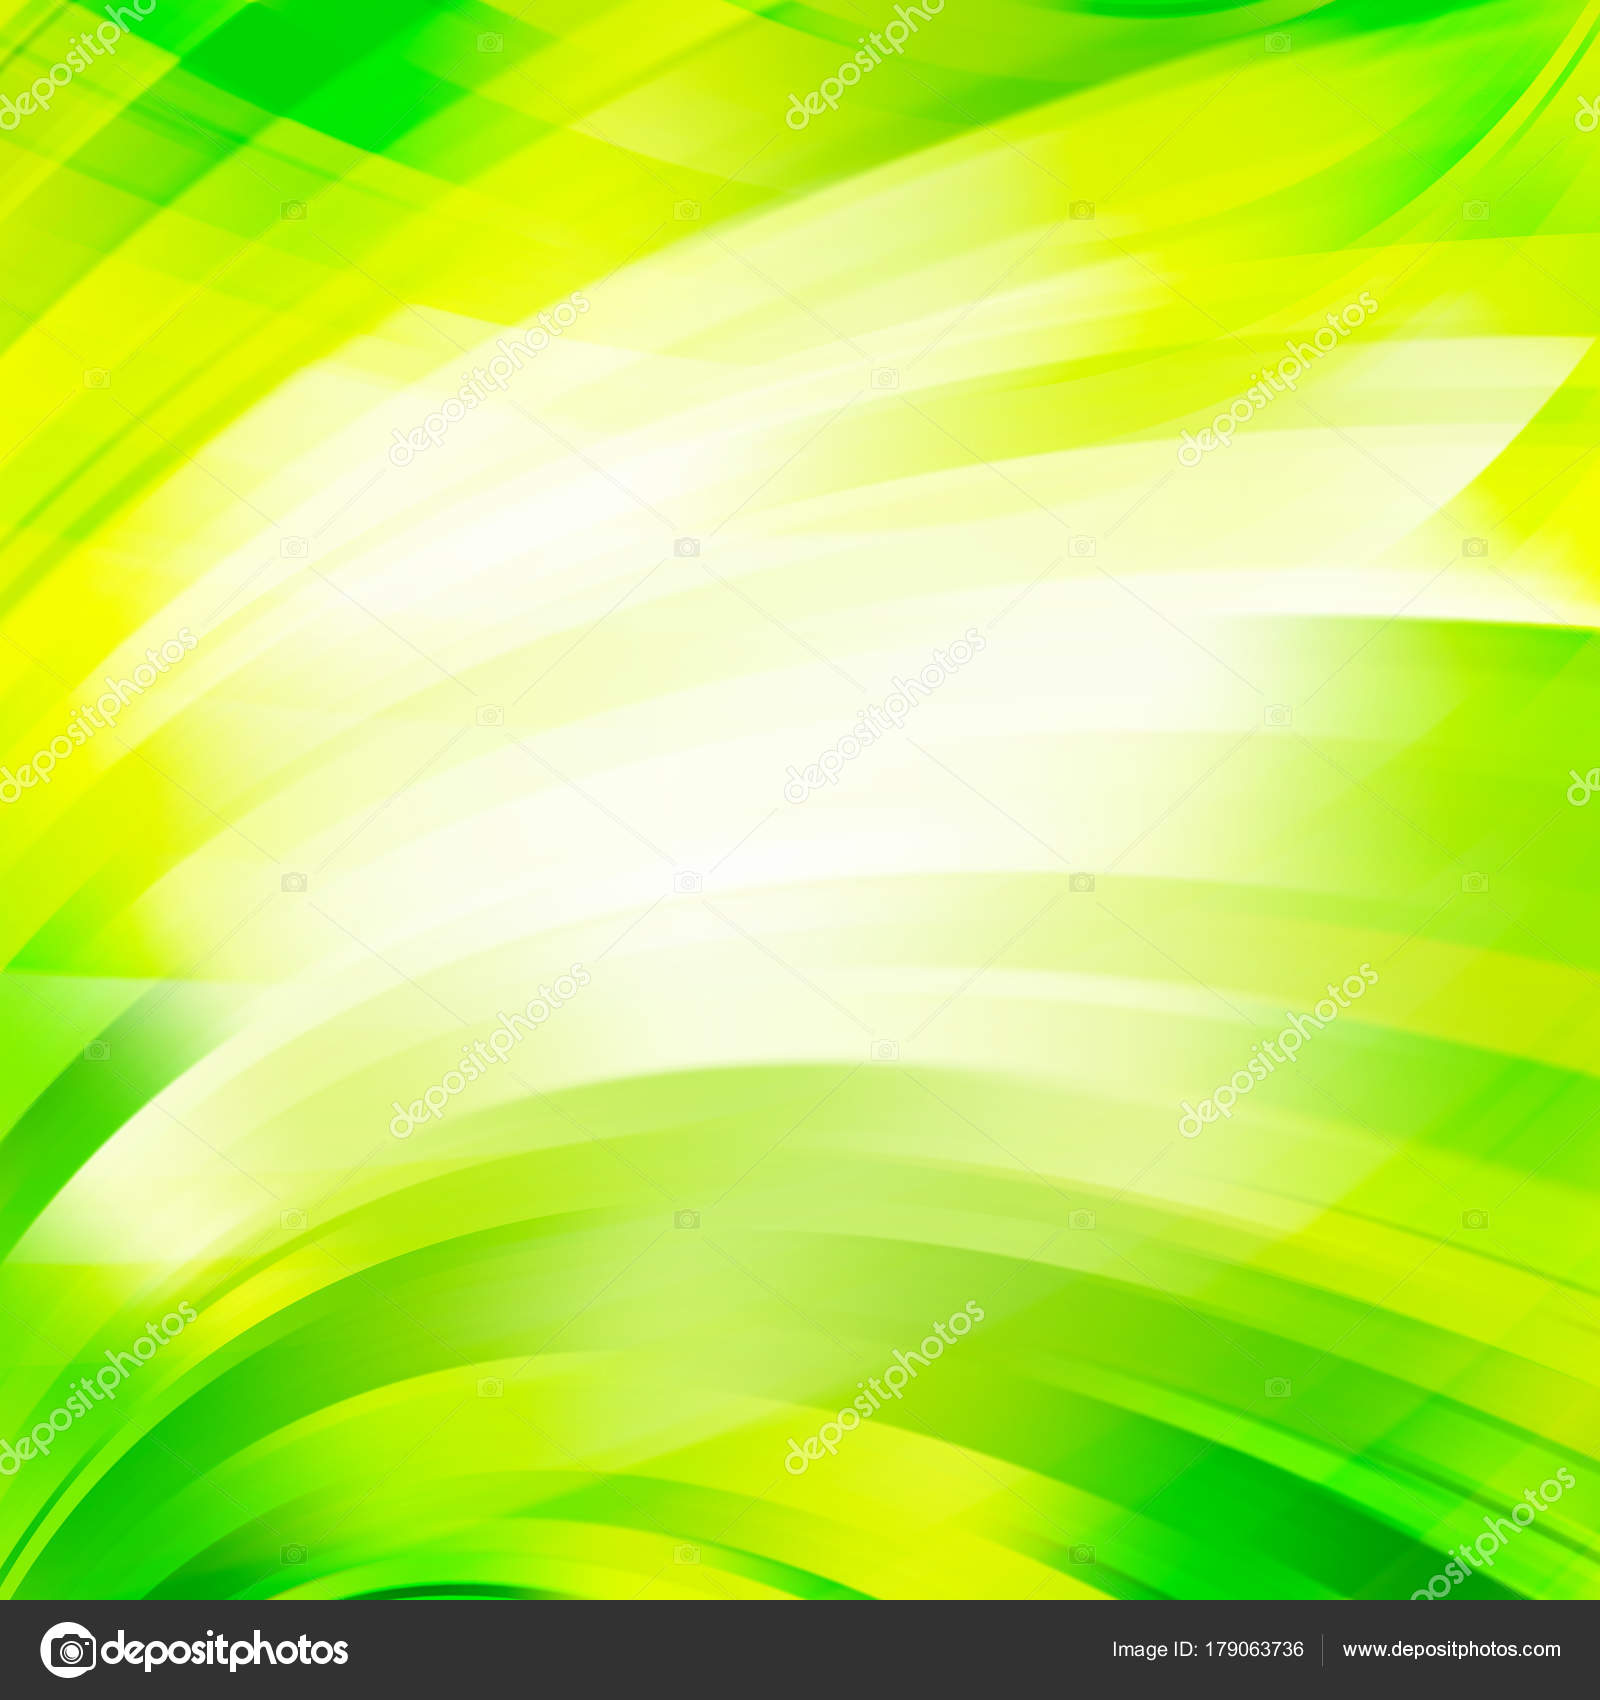 Abstract Background With Swirl Waves. Abstract Background